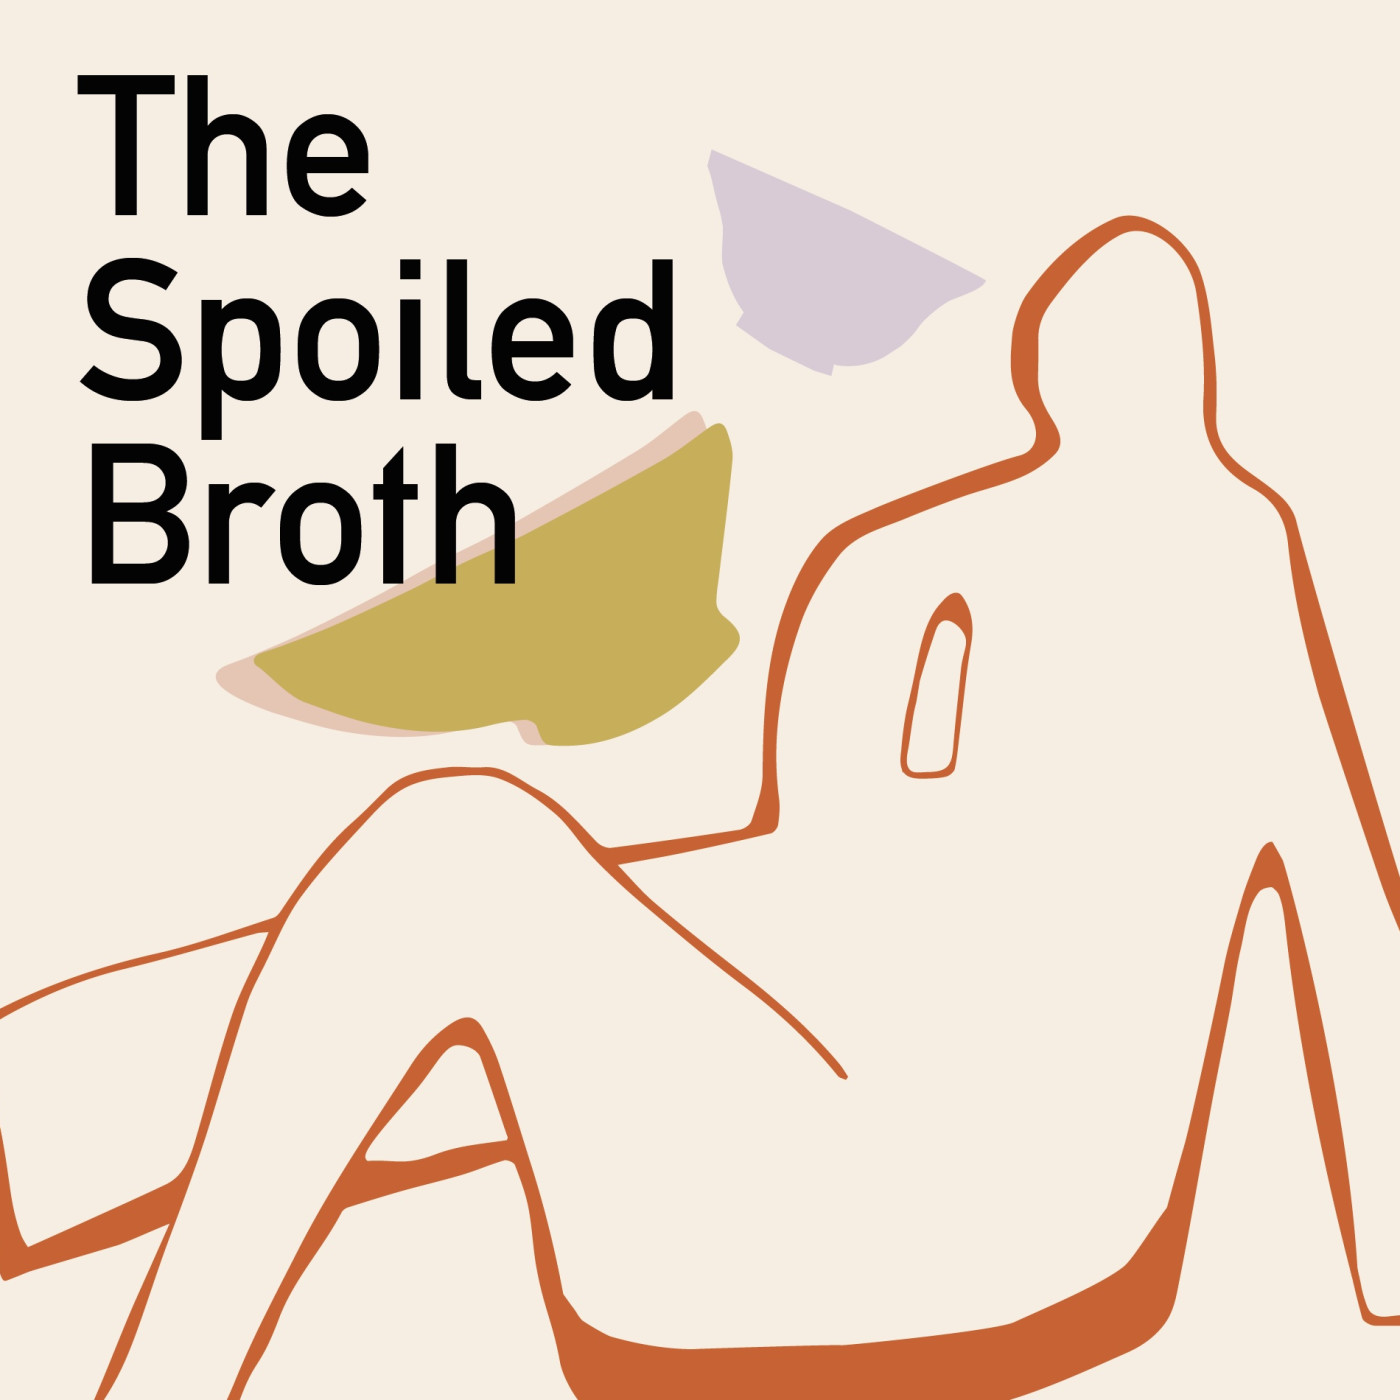 The Spoiled Broth